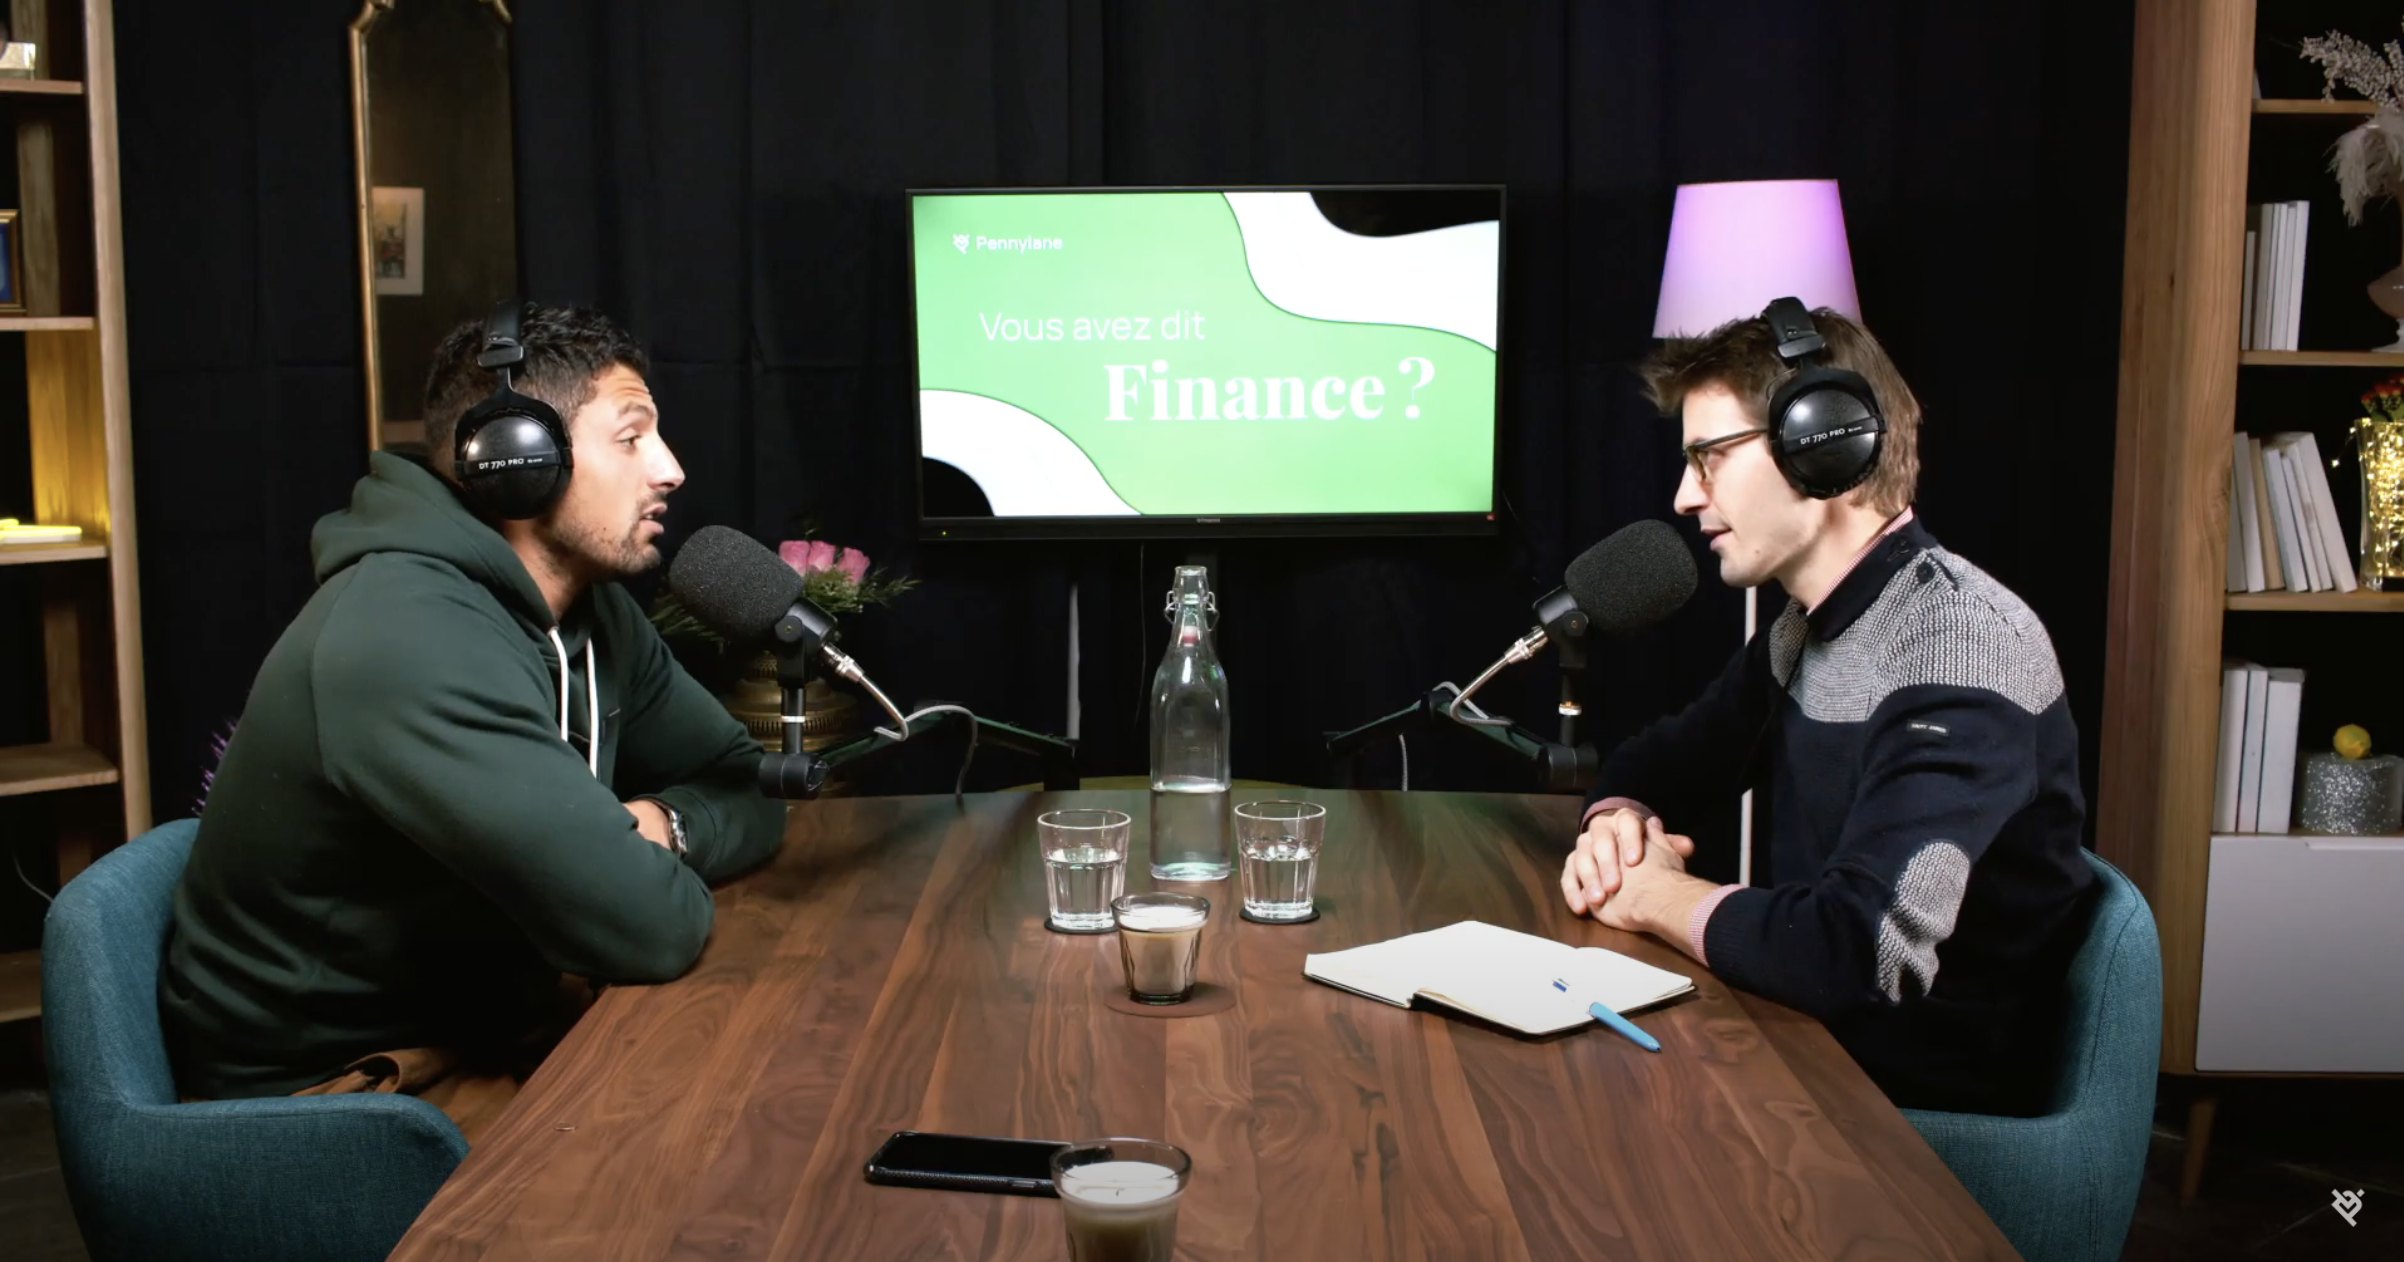 Podcast vous avez dit finance ? Keradom